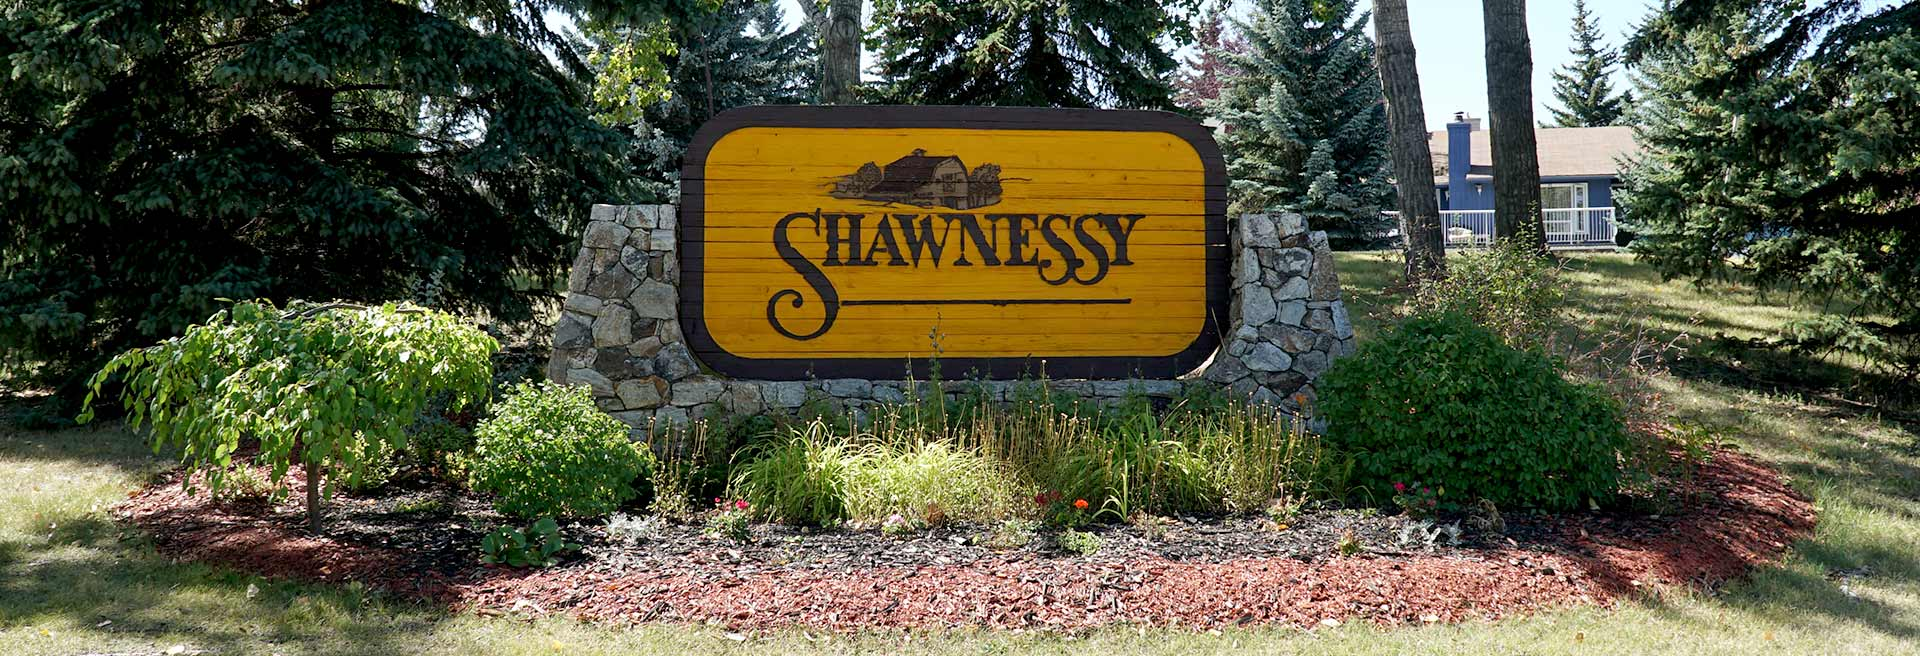 Shawnessy Smiles Dental | Shawnessy Neighborhood Sign